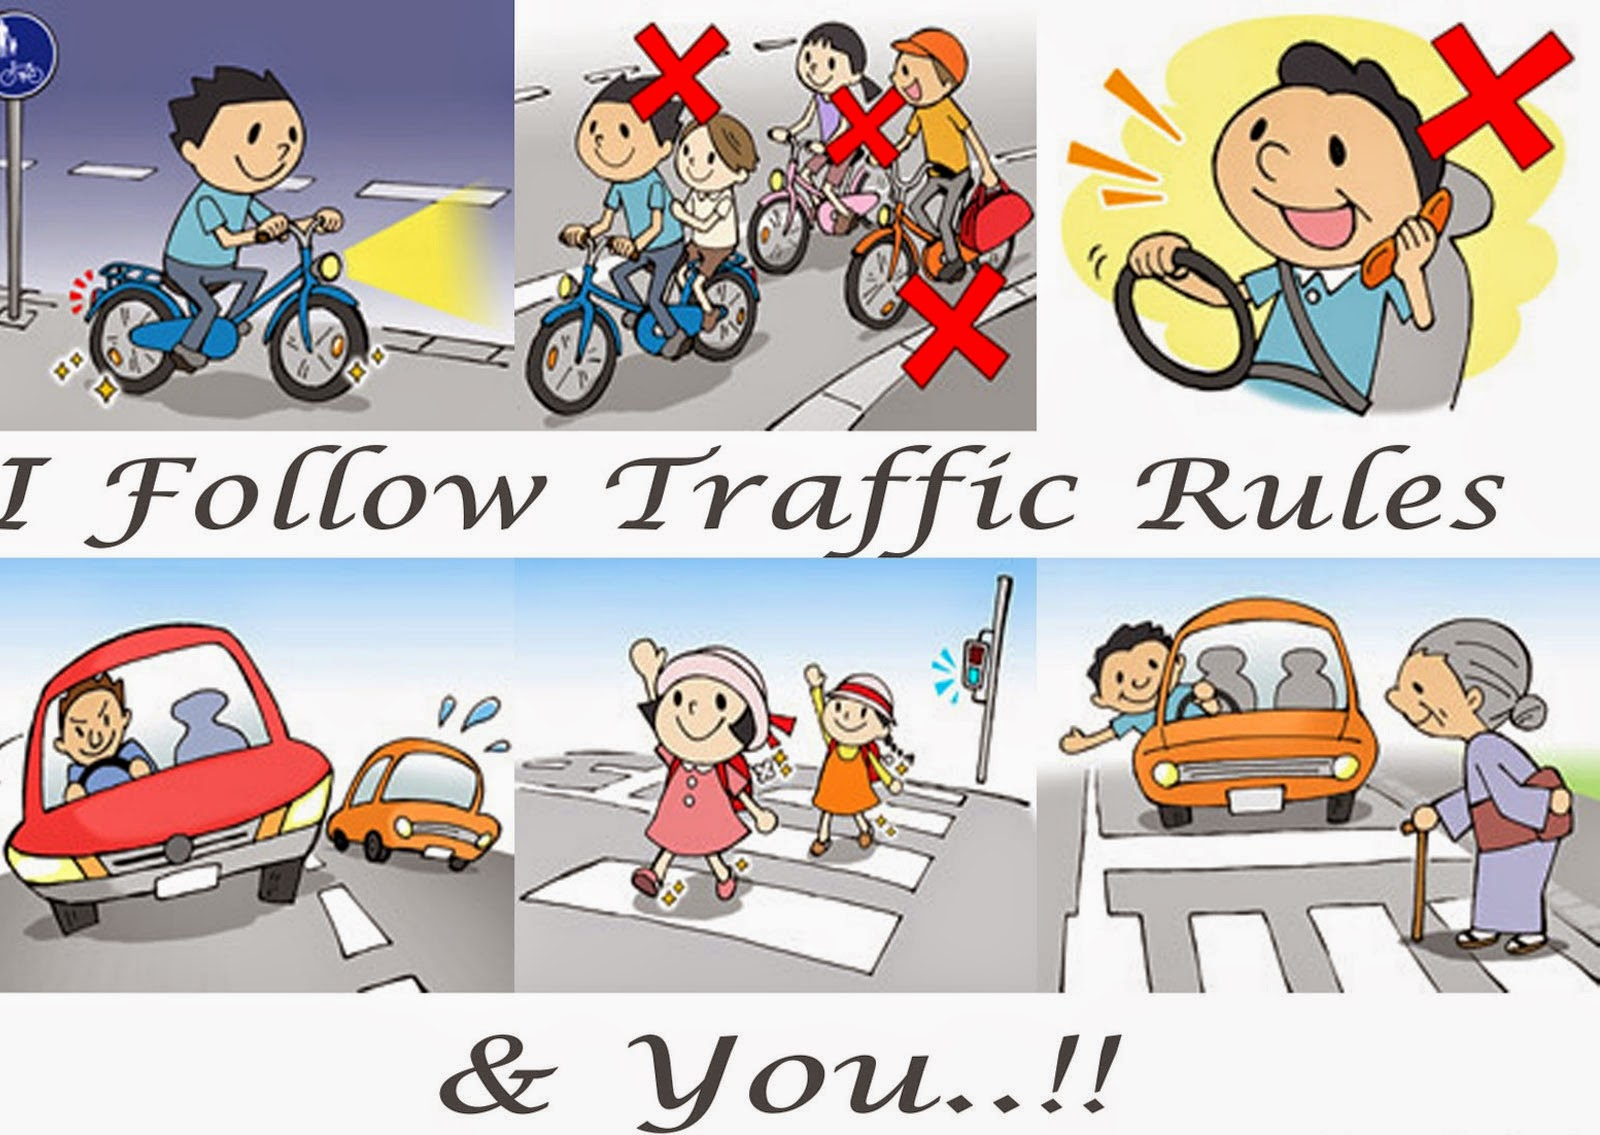 699 words essay on traffic rules in India